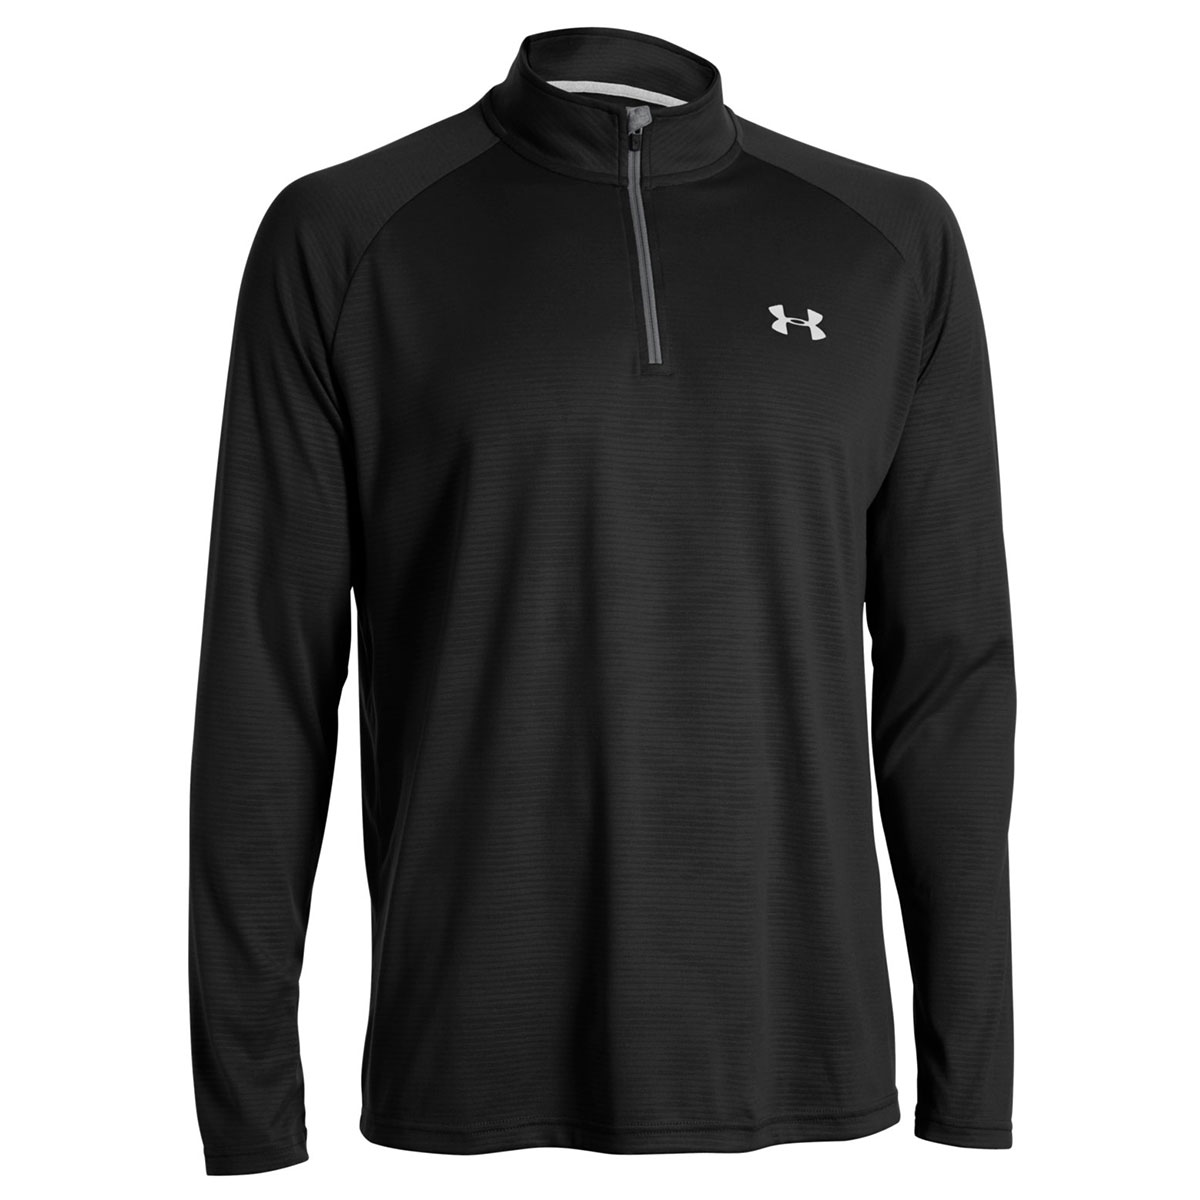 Under-Armour-Mens-UA-Tech-1-4-Zip-Long-Sleeve-Top-Workout-Layer-27-OFF-RRP thumbnail 28